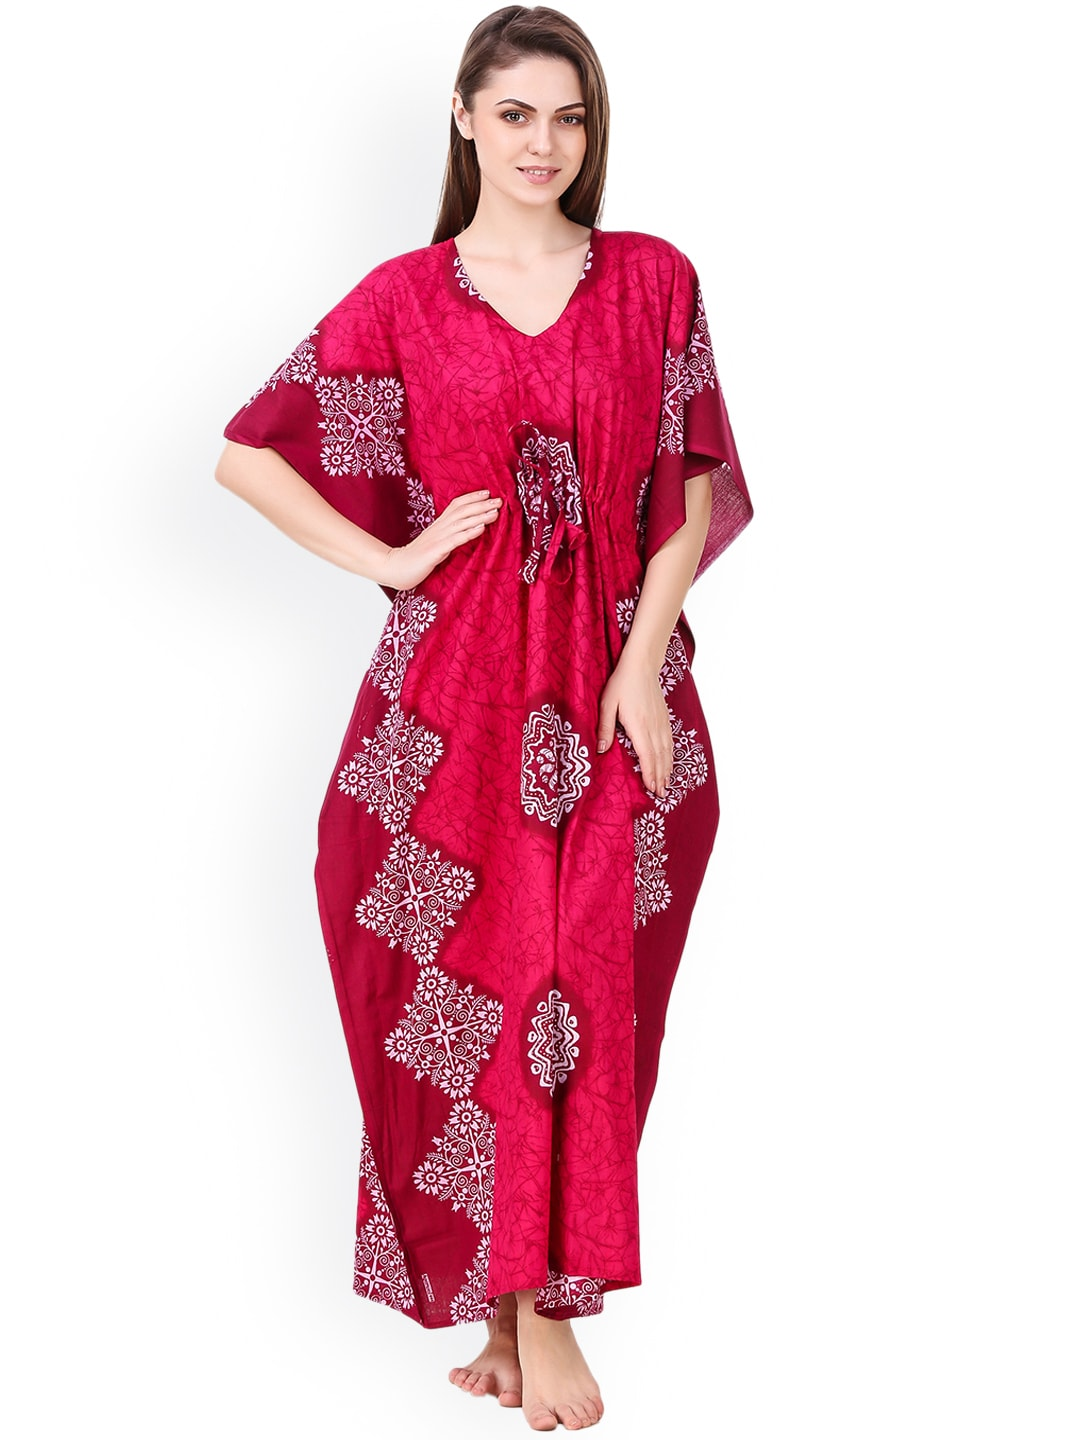 Cotton Nightdresses - Buy Cotton Nightdresses Online in India  37c4c2a5e